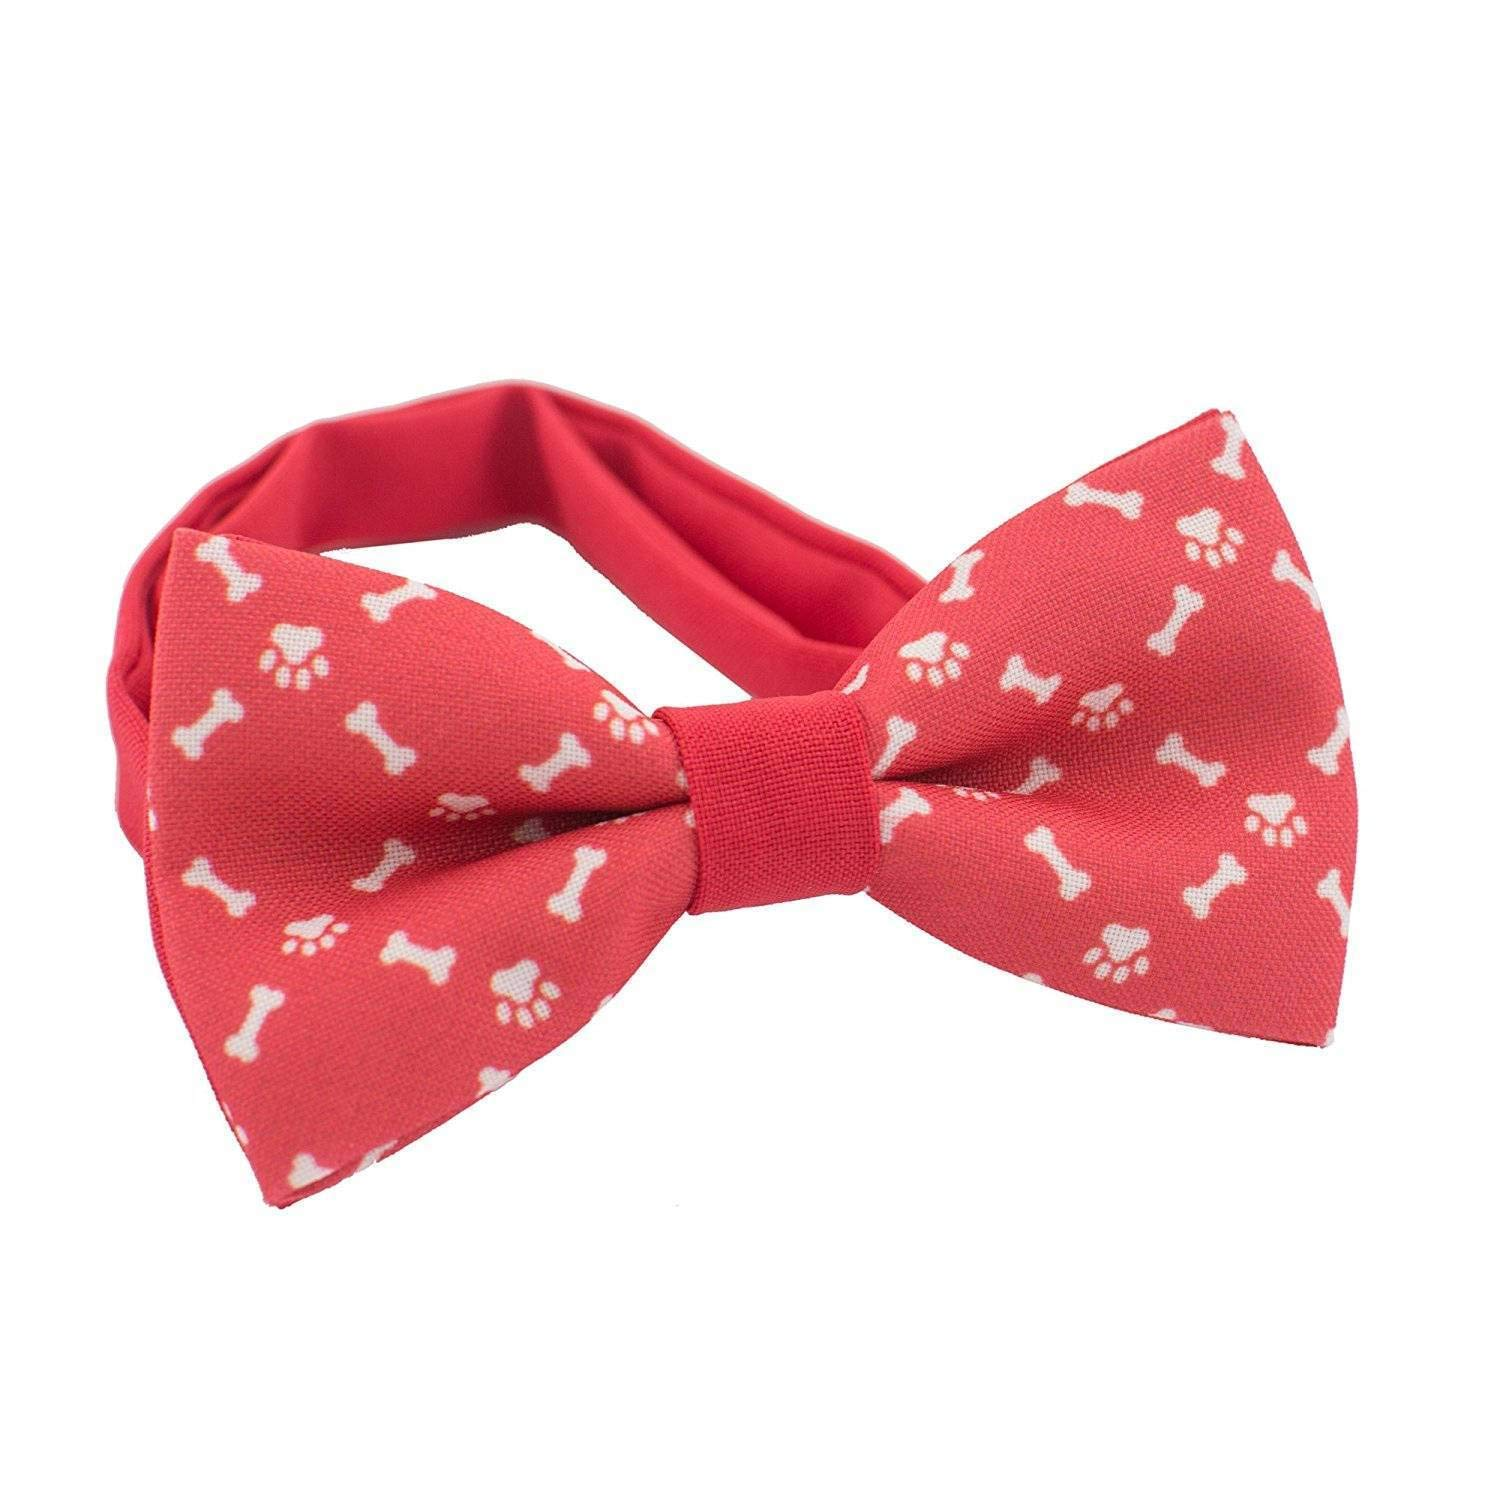 Bow Tie House Dog bones and paws bow tie pattern red pre-tied unisex shape